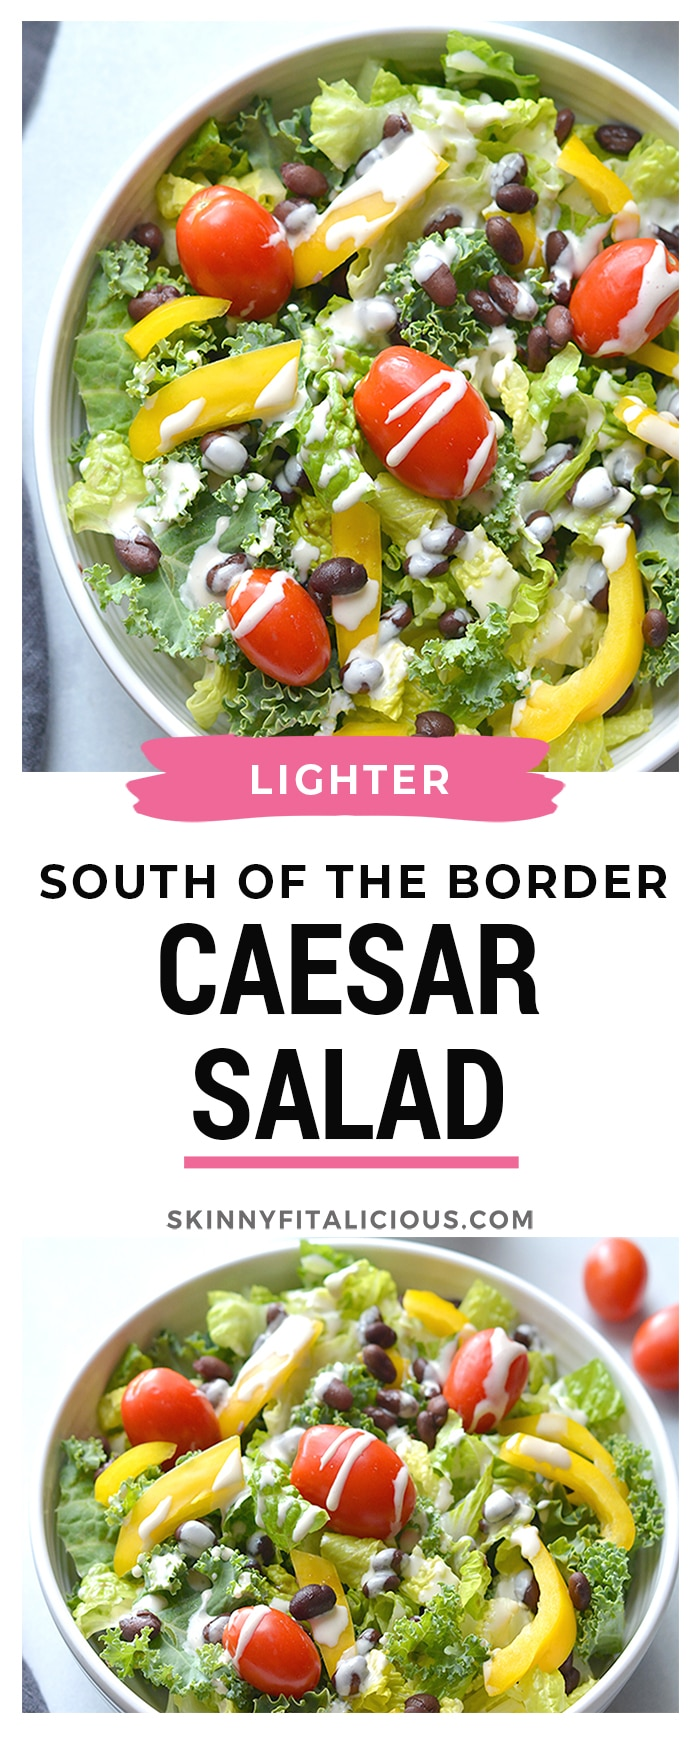 South Of The Border Caesar Salad! A classic salad made healthier with homemade Caesar dressing and a blend of kale and romaine lettuce. Topped with black beans and bell peppers for a Mexican flare. Gluten Free + Low Calorie